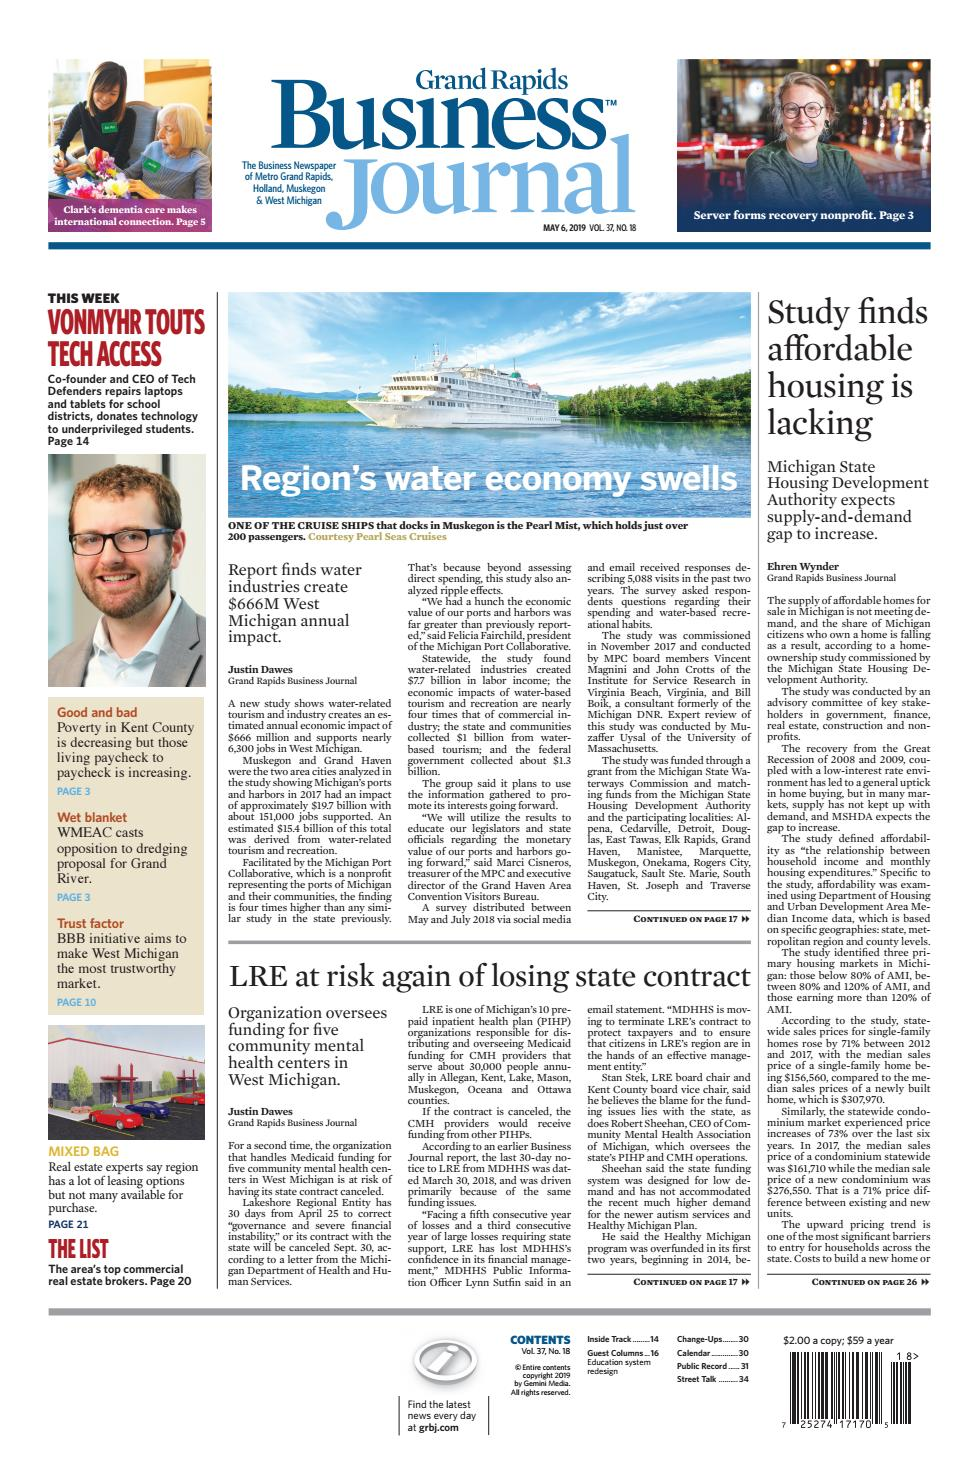 Recent Devos Hires Bode Ill For Student >> Grand Rapids Business Journal 05 06 19 By Grand Rapids Business